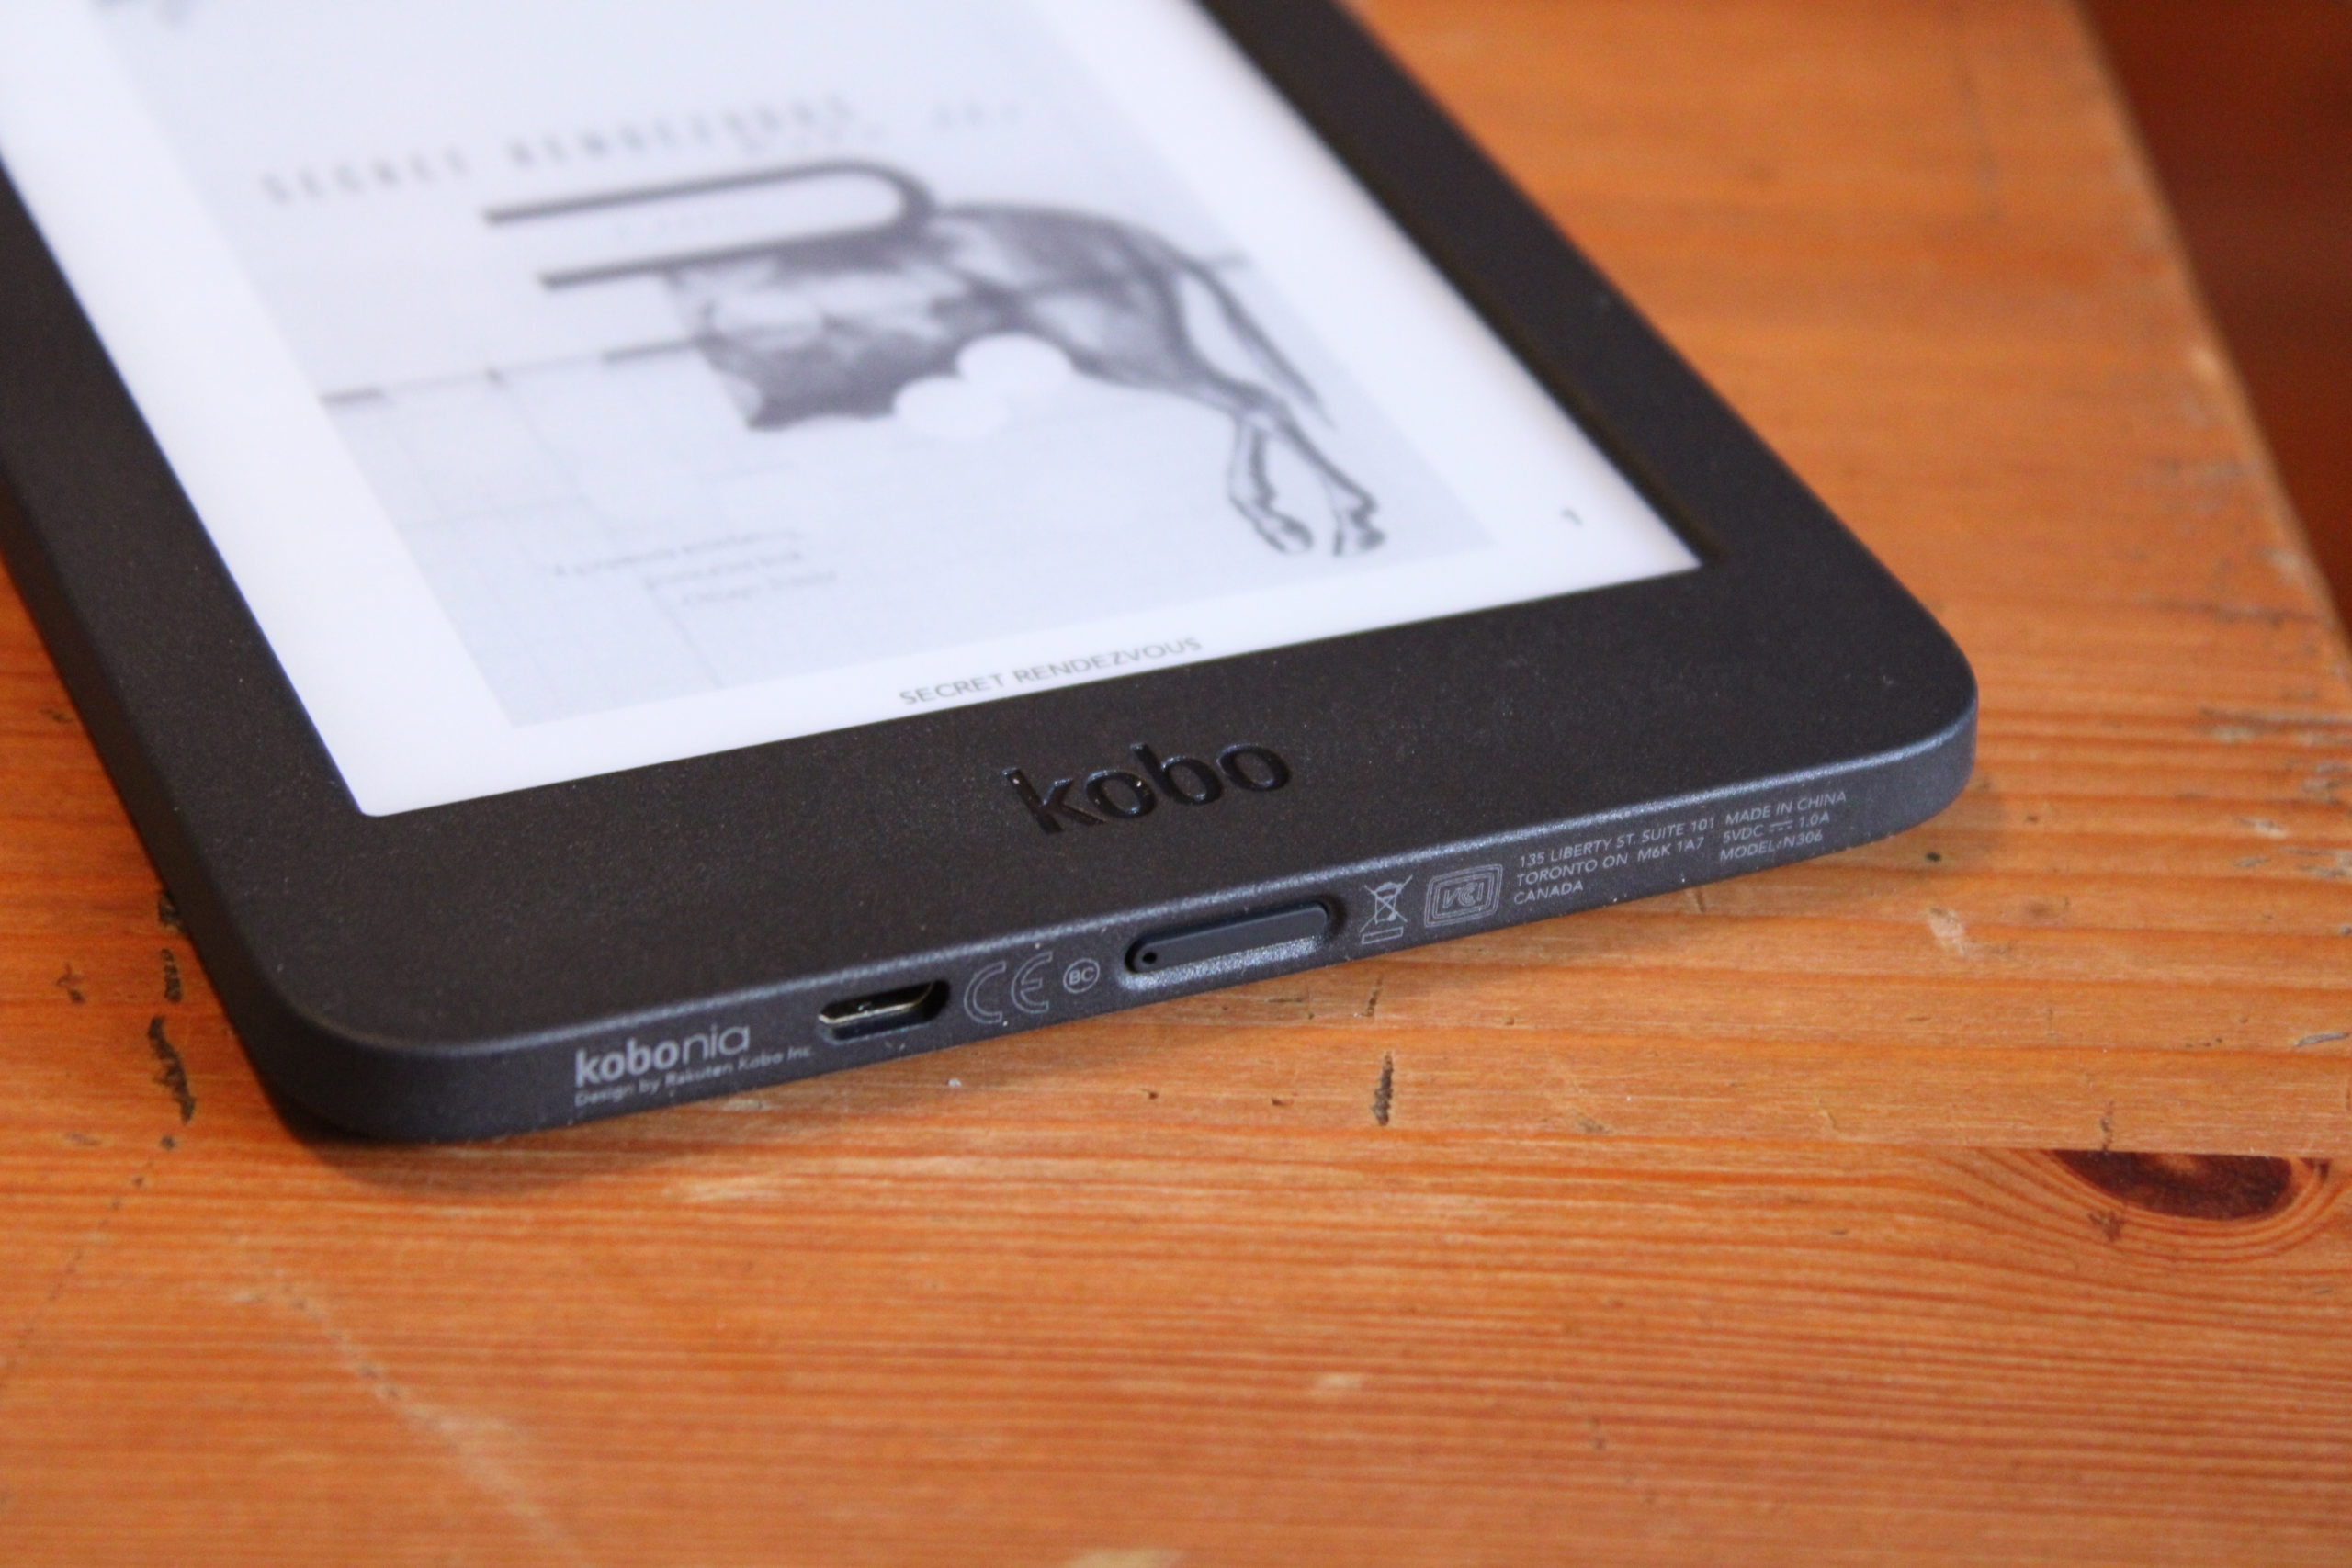 Kobo introduces the lackluster Nia to replace its budget Aura e-reader – ProWellTech